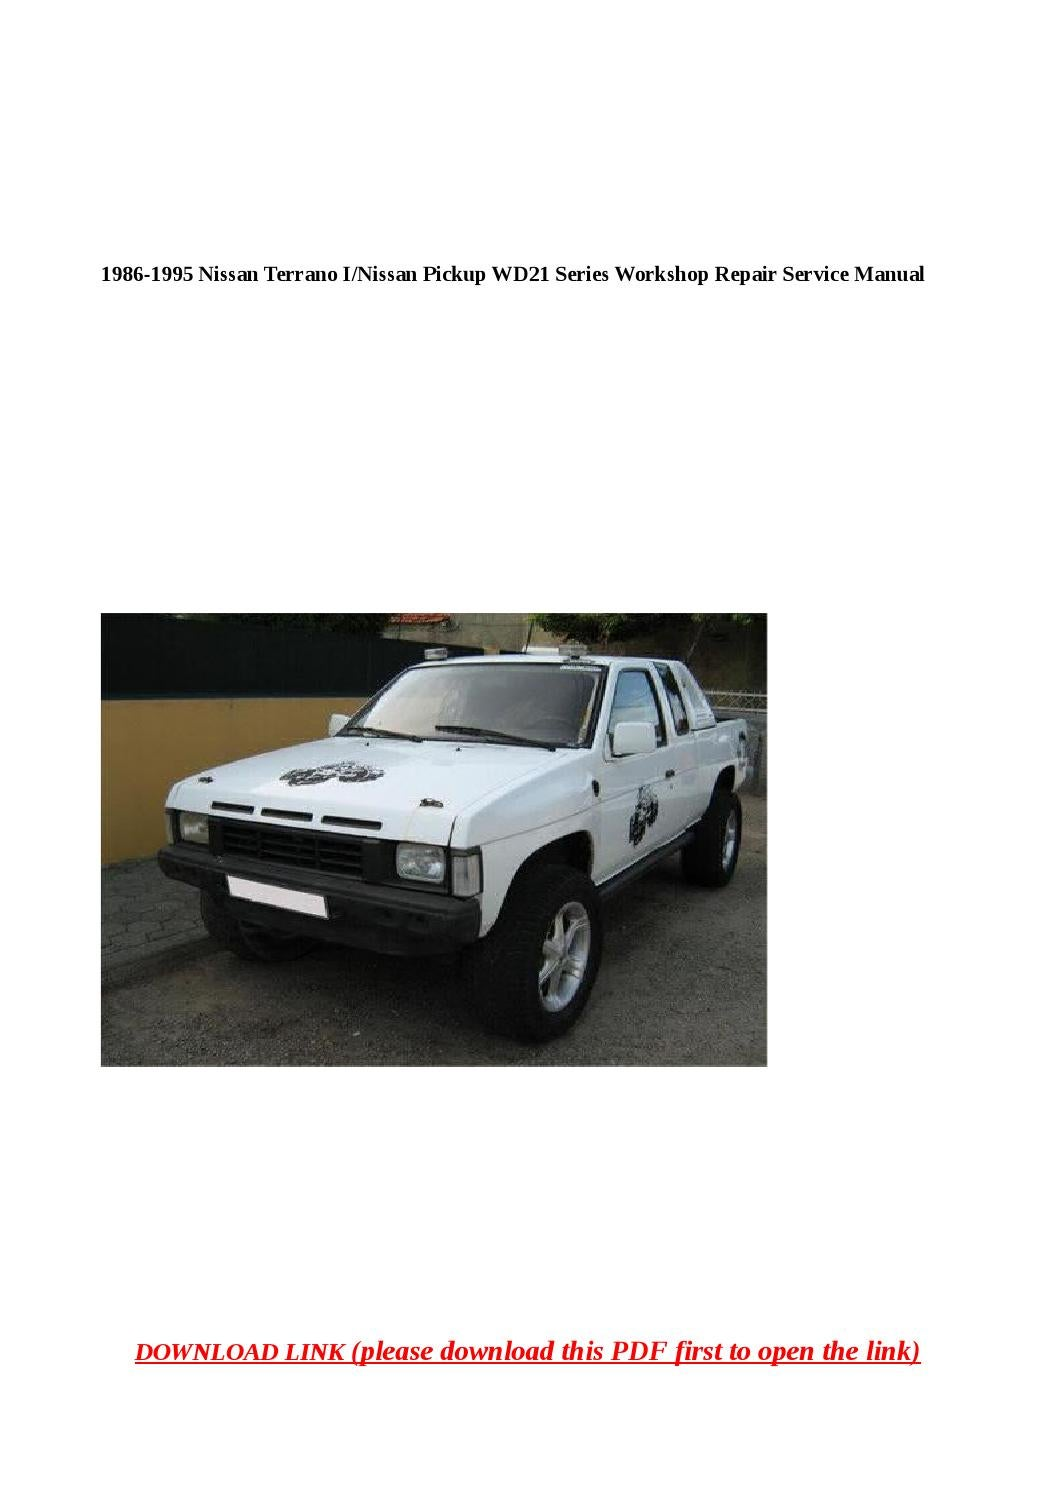 1986 1995 nissan terrano i nissan pickup wd21 series workshop repair  service manual by dale - issuu